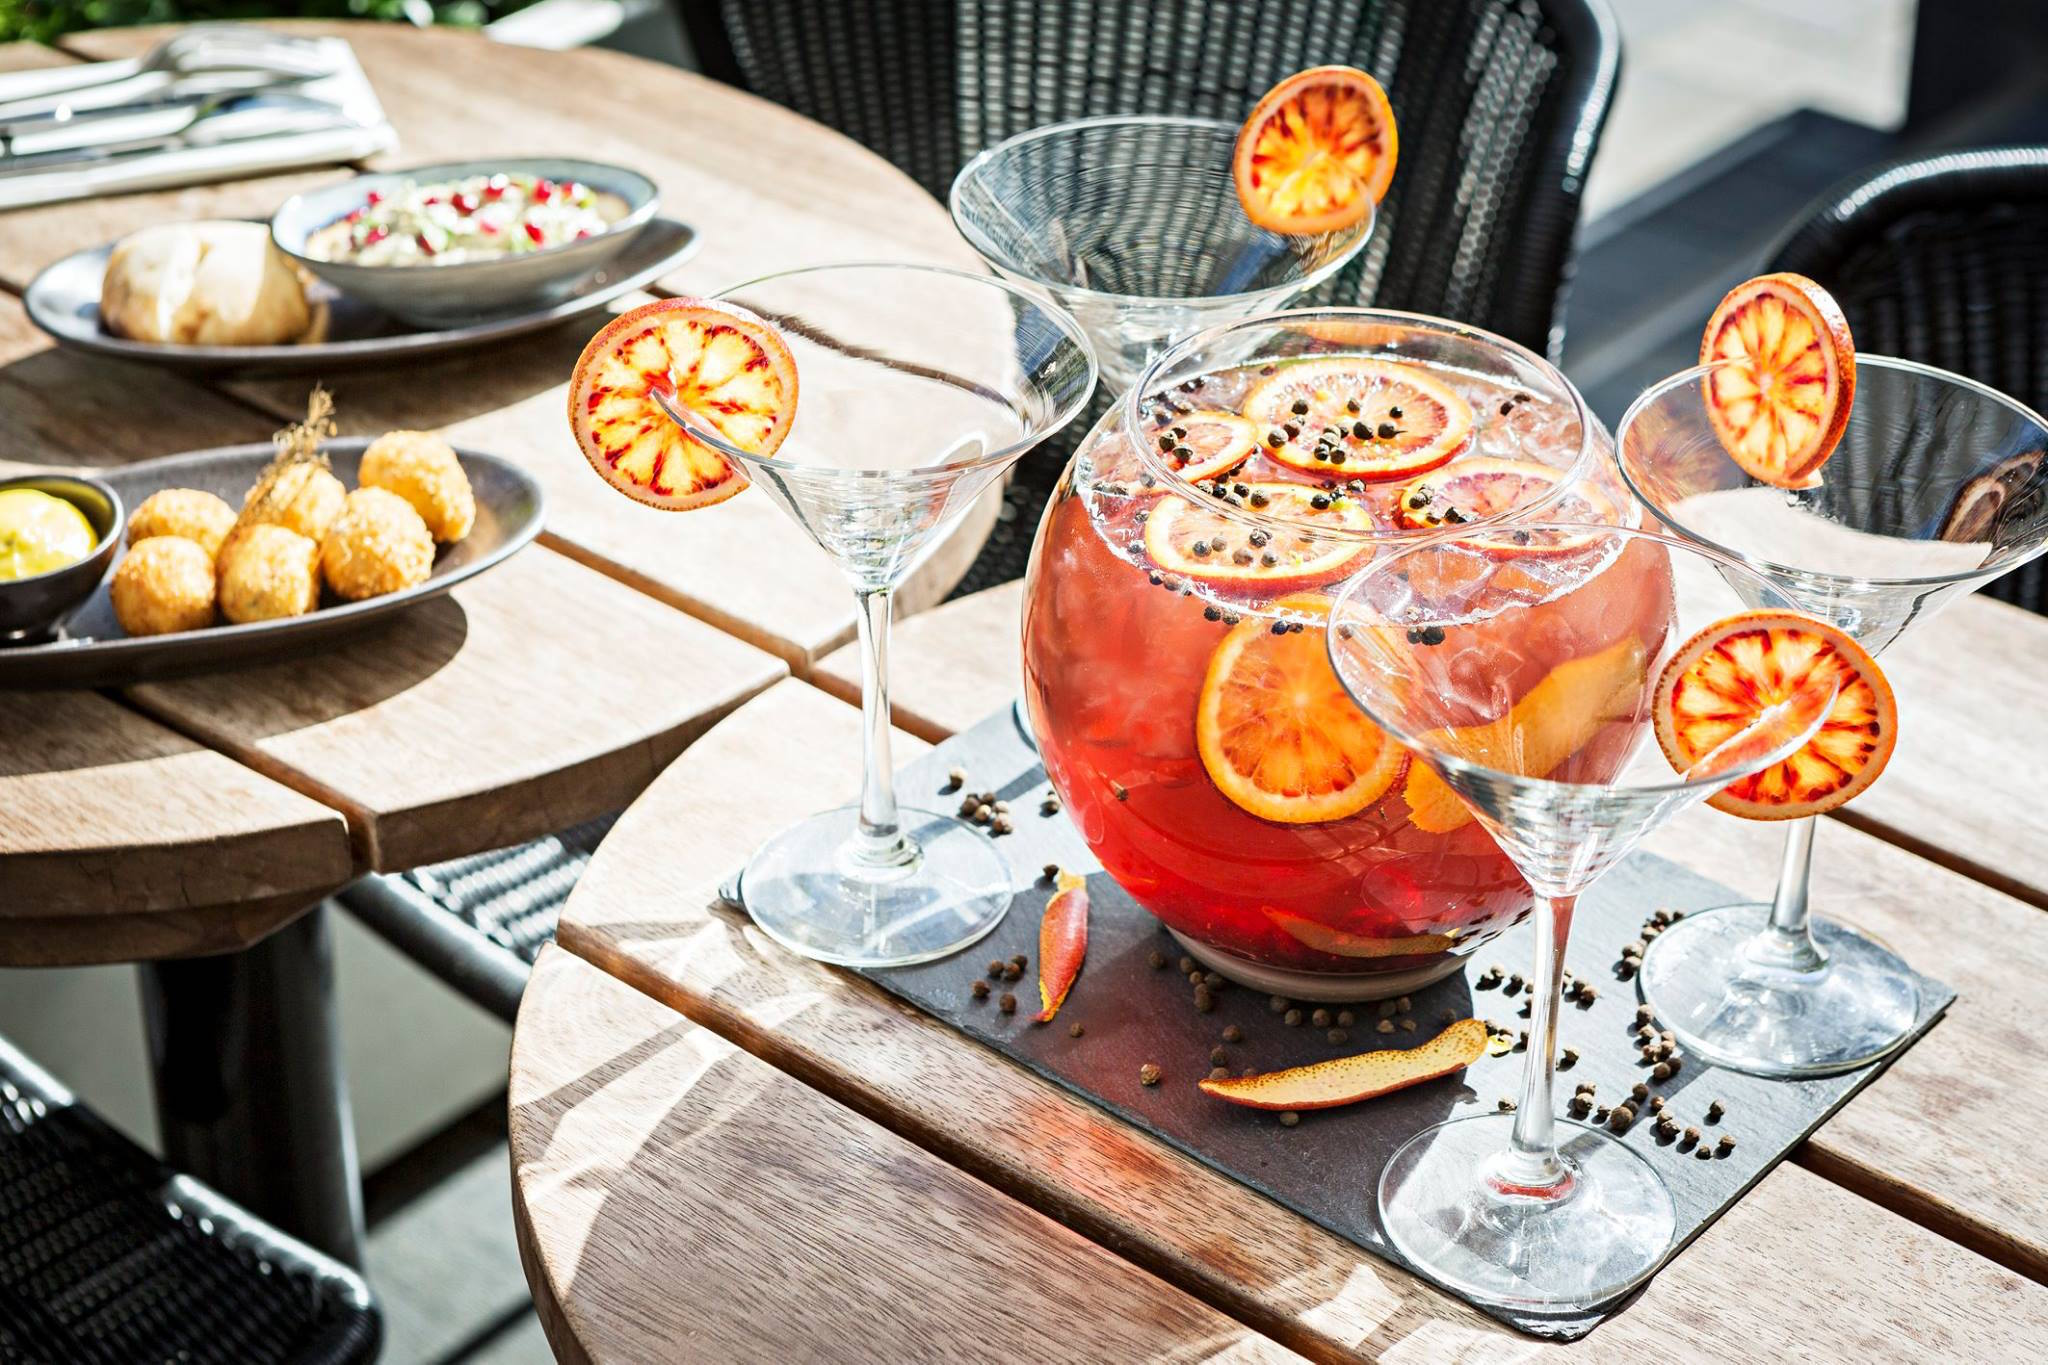 An outdoor table at Publicis Drugstore on the Champs Elysées. On top of the table are various plates of food, martini glasses with sliced fruit on the rim, and a pitcher of a bright orange beverage.